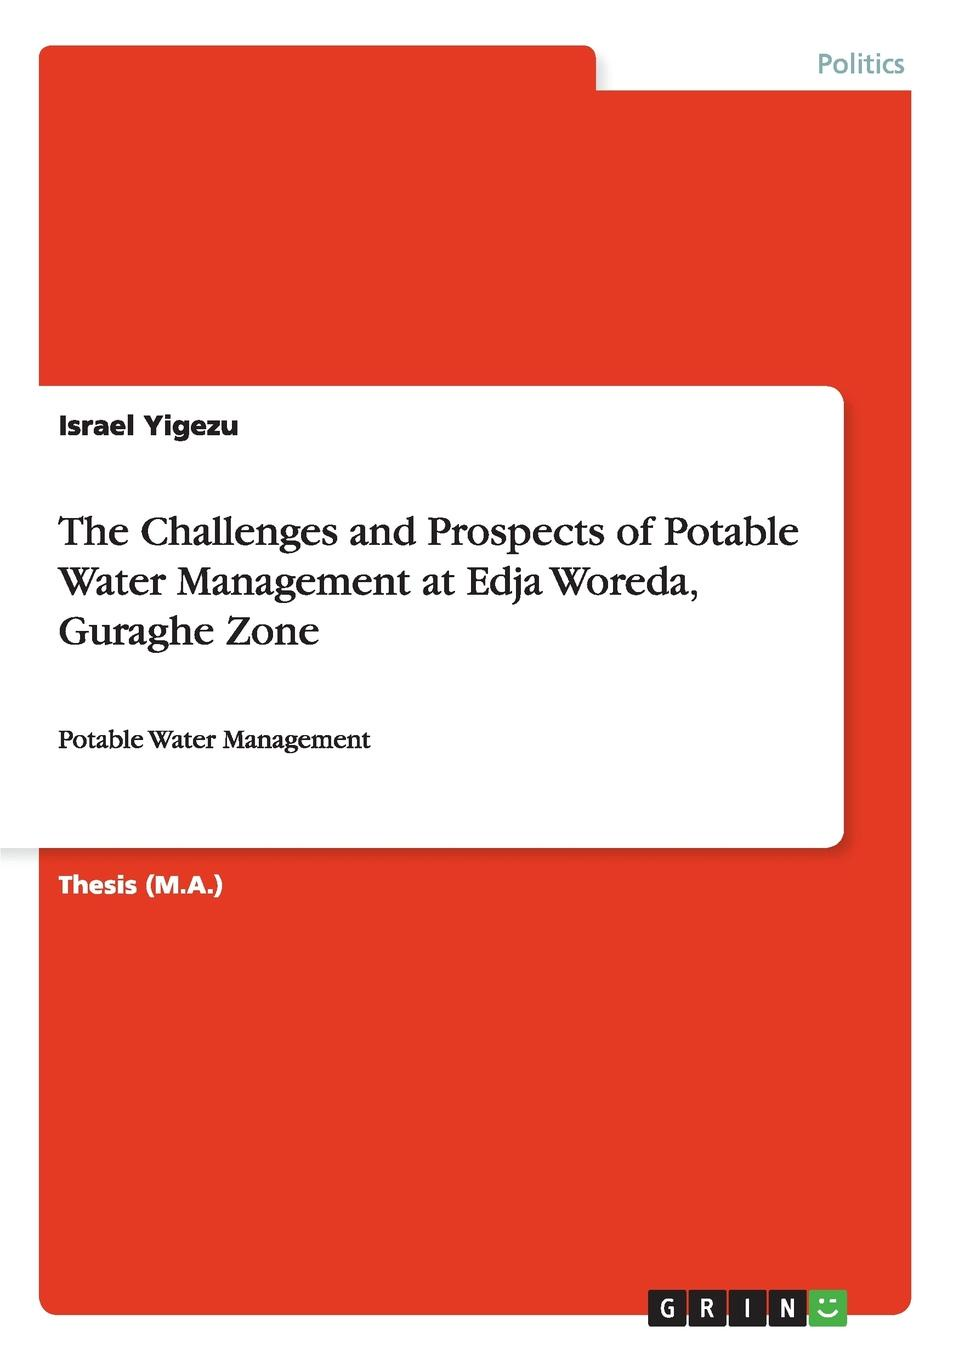 Israel Yigezu The Challenges and Prospects of Potable Water Management at Edja Woreda, Guraghe Zone voeller john g water safety and water infrastructure security